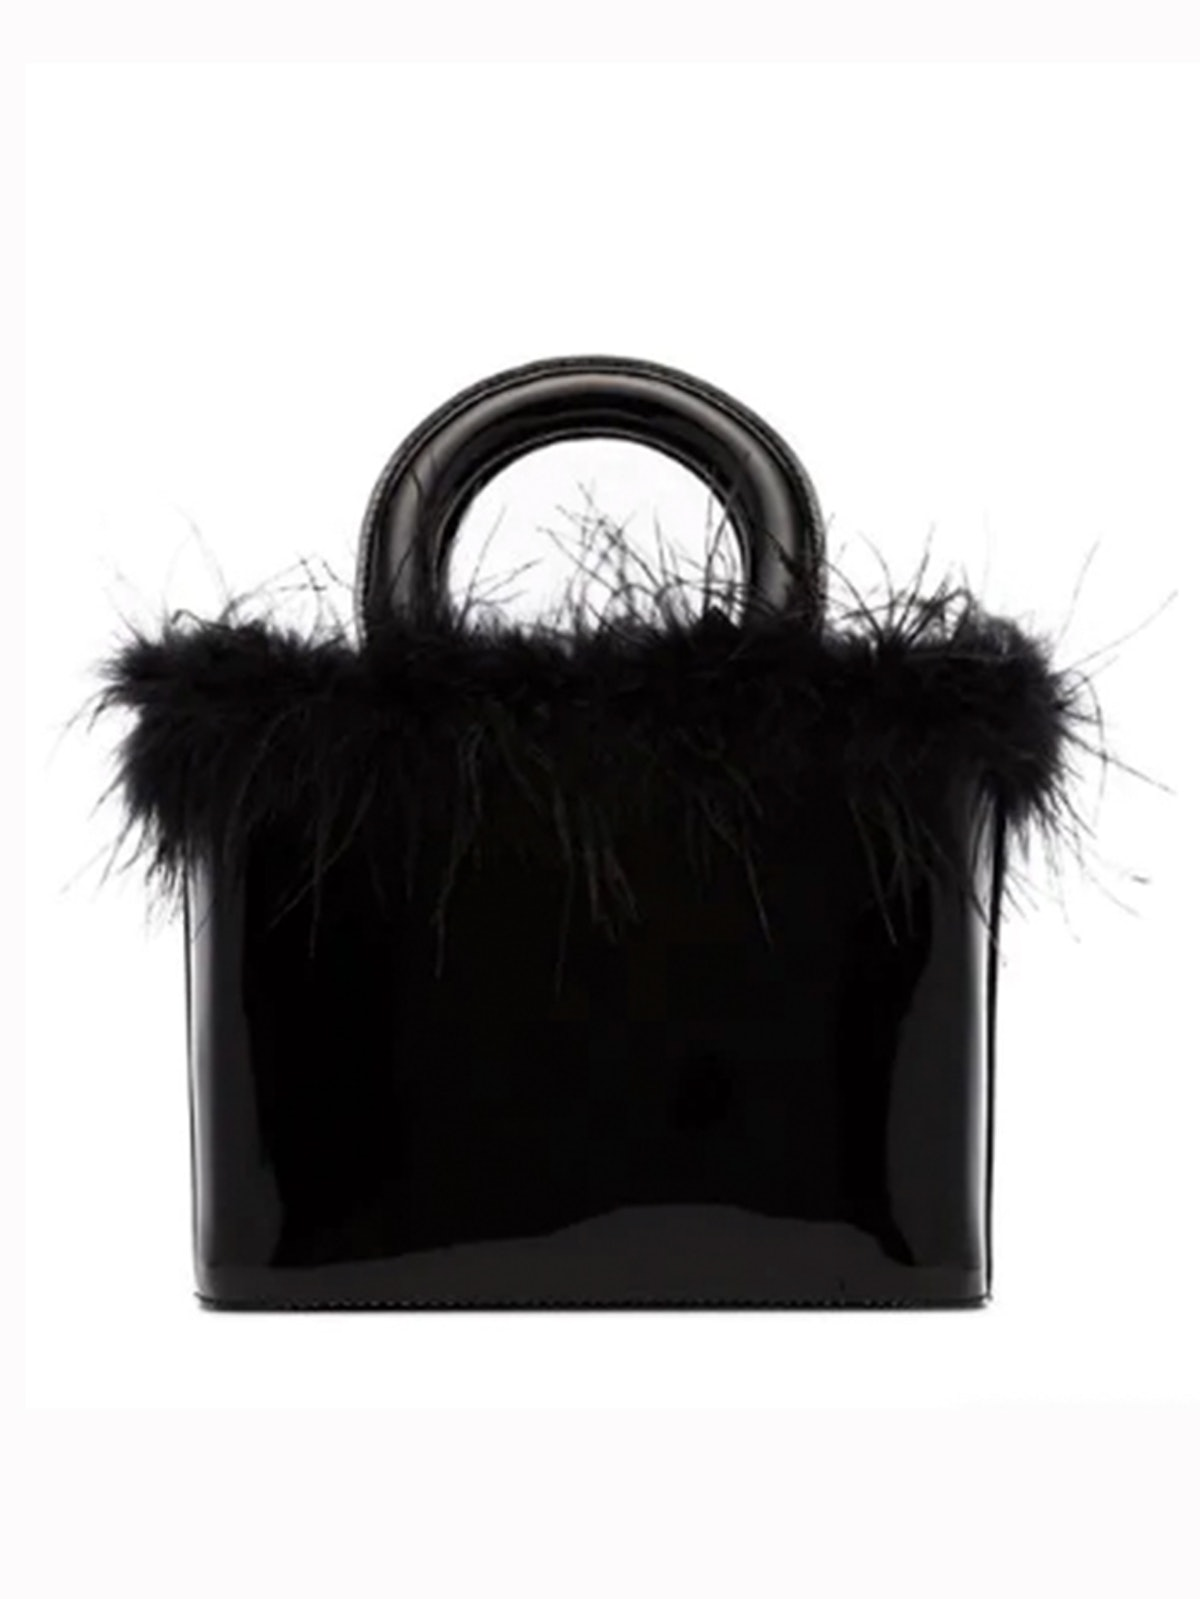 Black Nic Patent Leather Tote